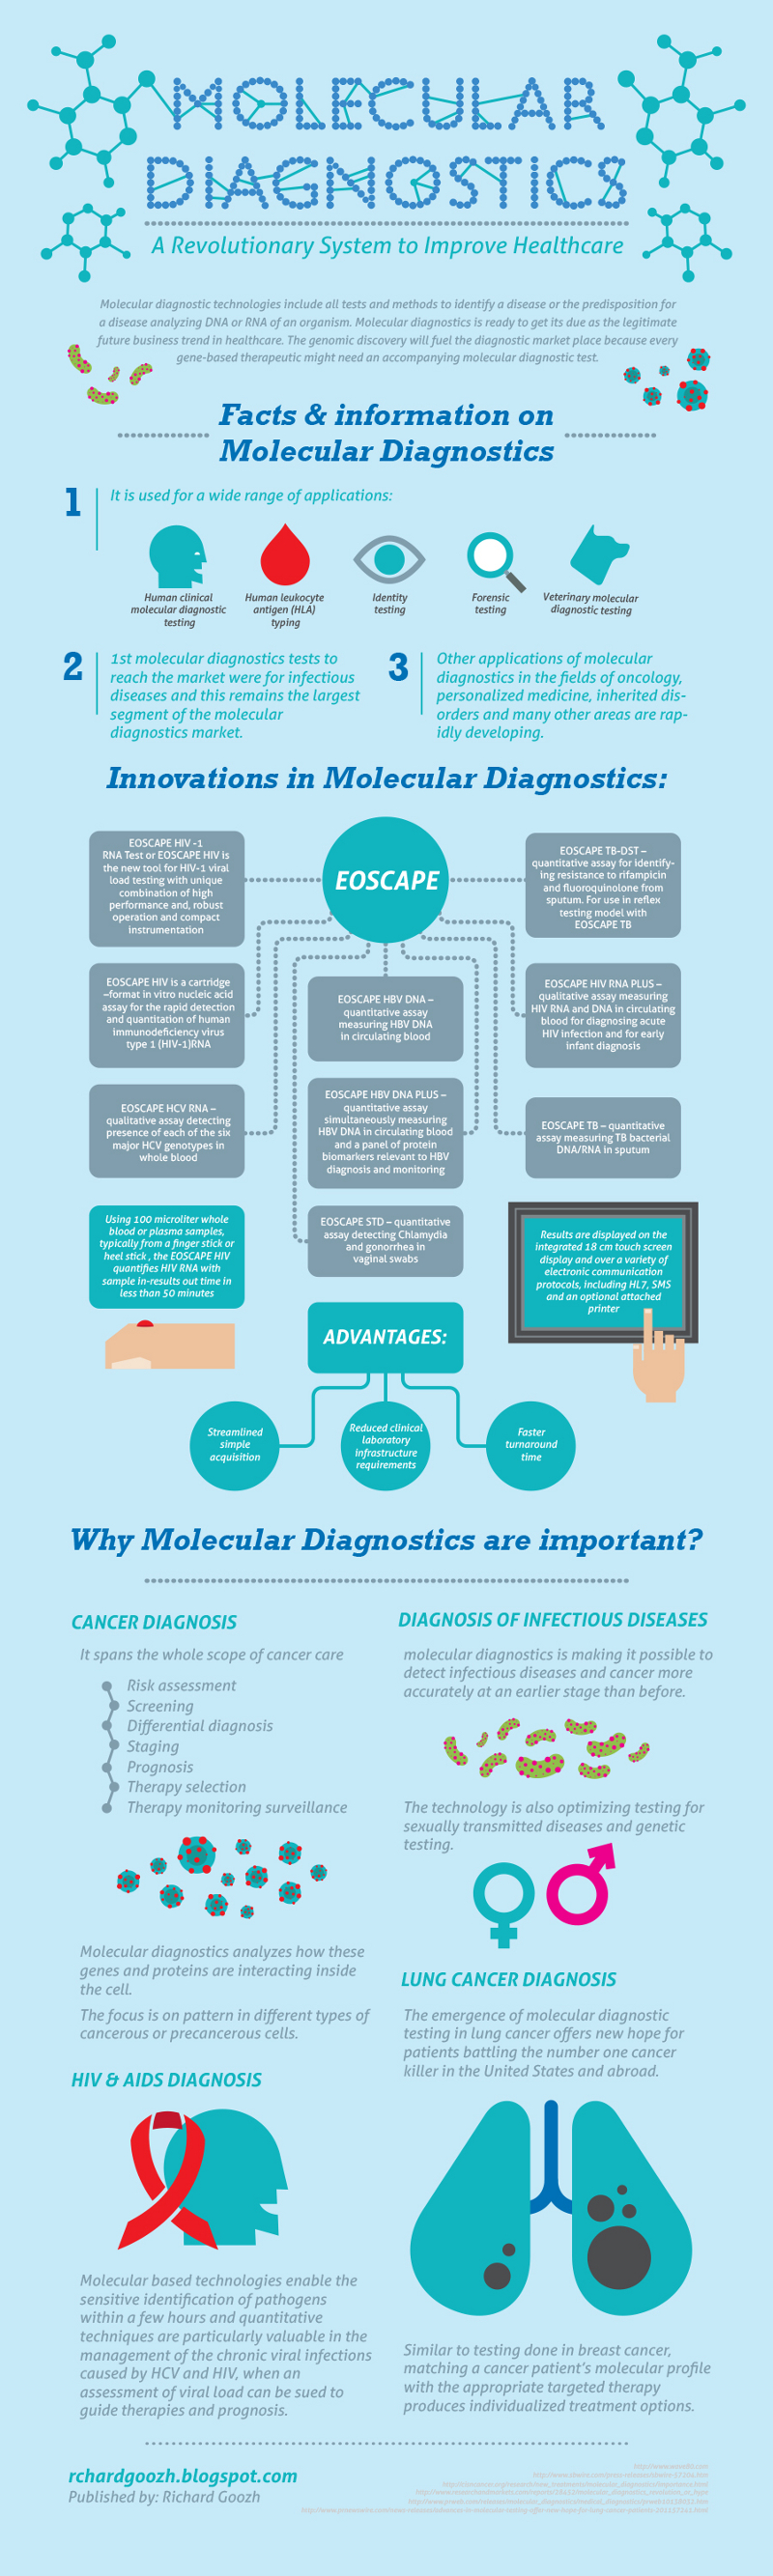 Molecular Diagnostics Facts and Information